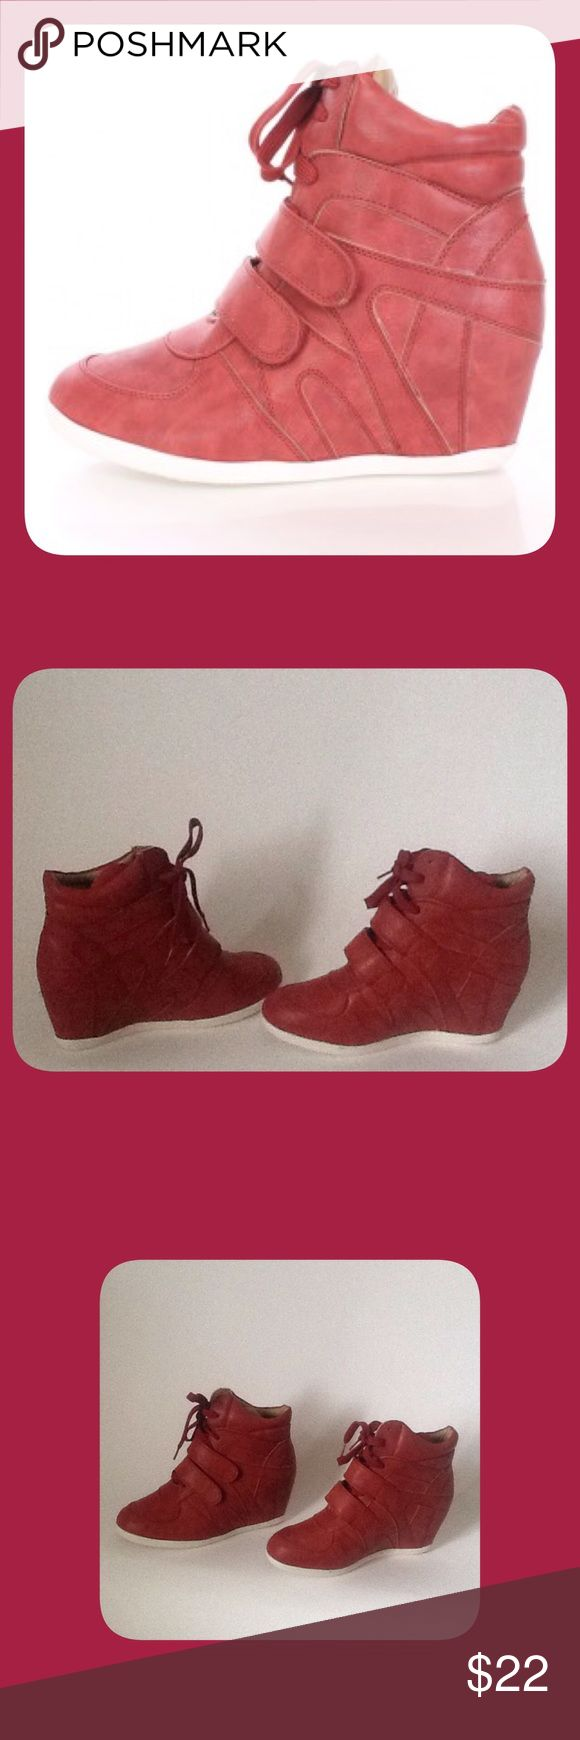 Red Wedge Sneakers These are New and have Never been Worn!!! To keep Shipping Low I Will ship Without the Box!!! Reasonable Offers Only!!! Reneeze Shoes Sneakers